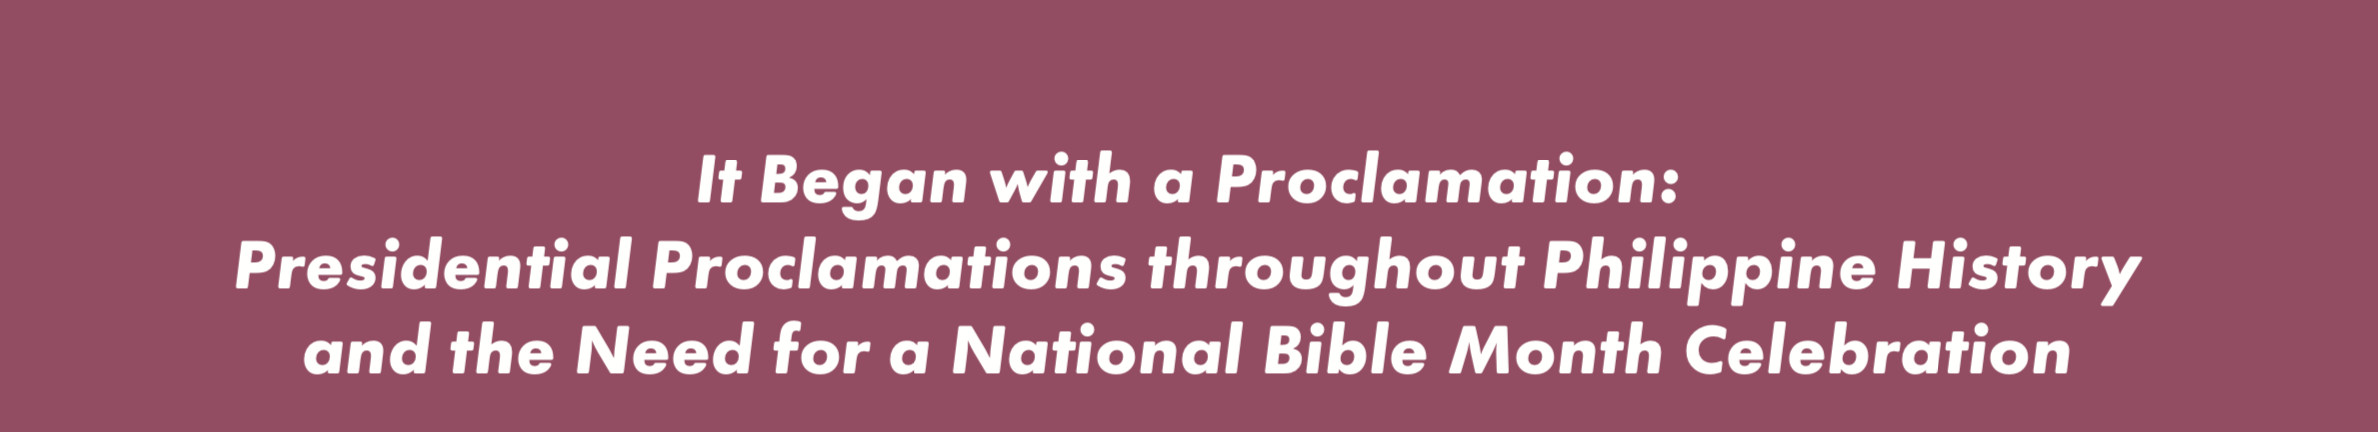 It Began with a Proclamation: Presidential Proclamations throughout Philippine History and the Need for a National Bible Month Celebration